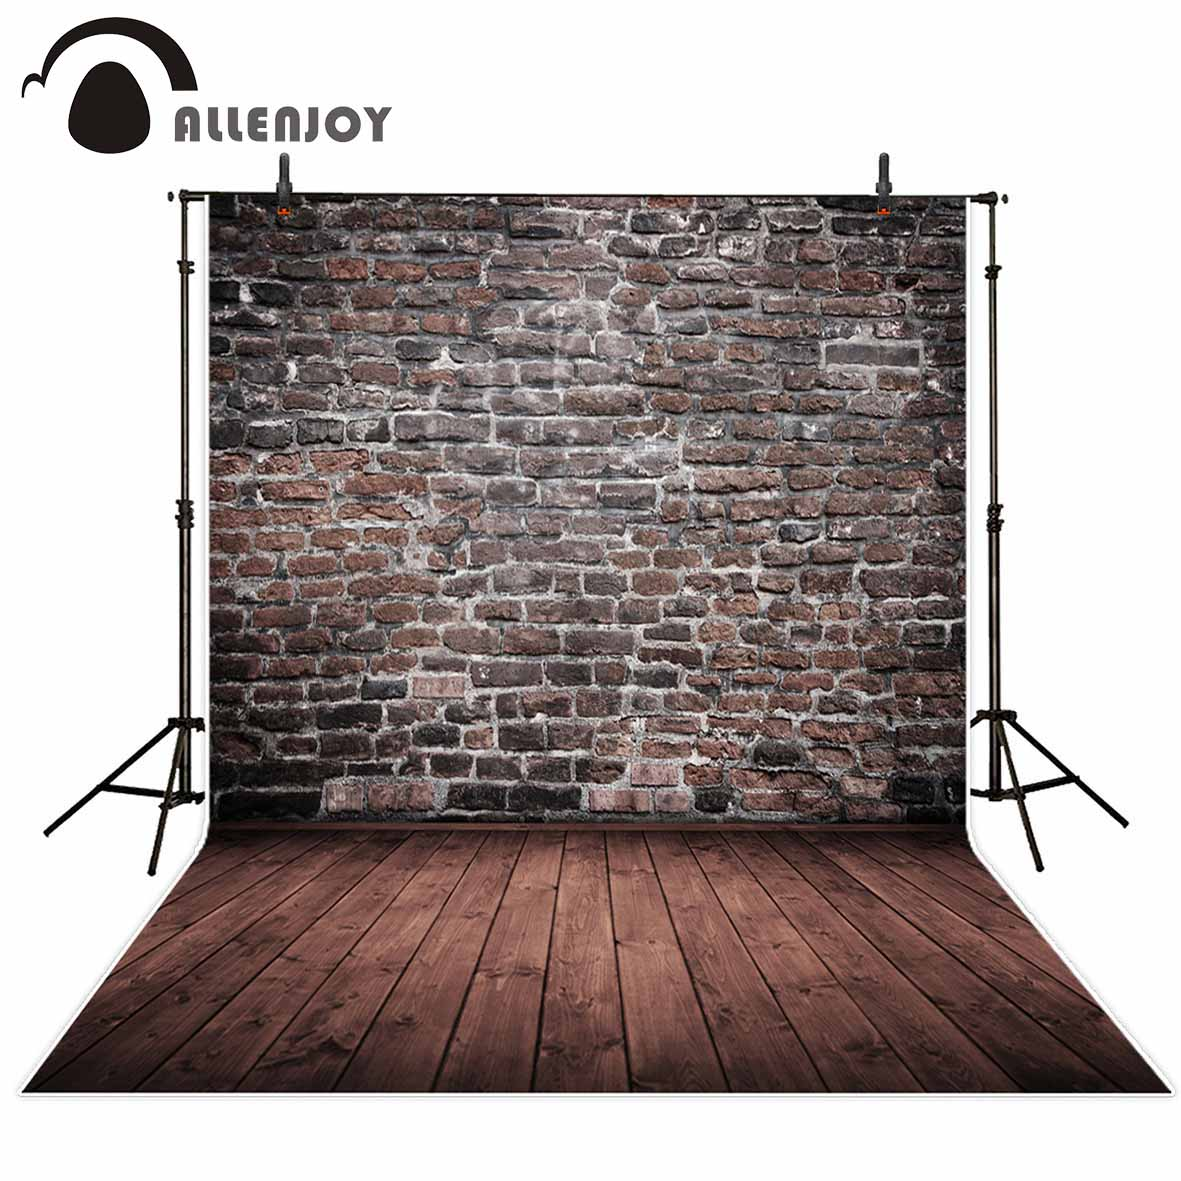 Allenjoy photography backdrops vintage brick wall brown wooden floor Background for photo studio backgrounds for kids dark brown brick wall with white clock photography backdrops wedding background 200x300cm photo studio props fotografia